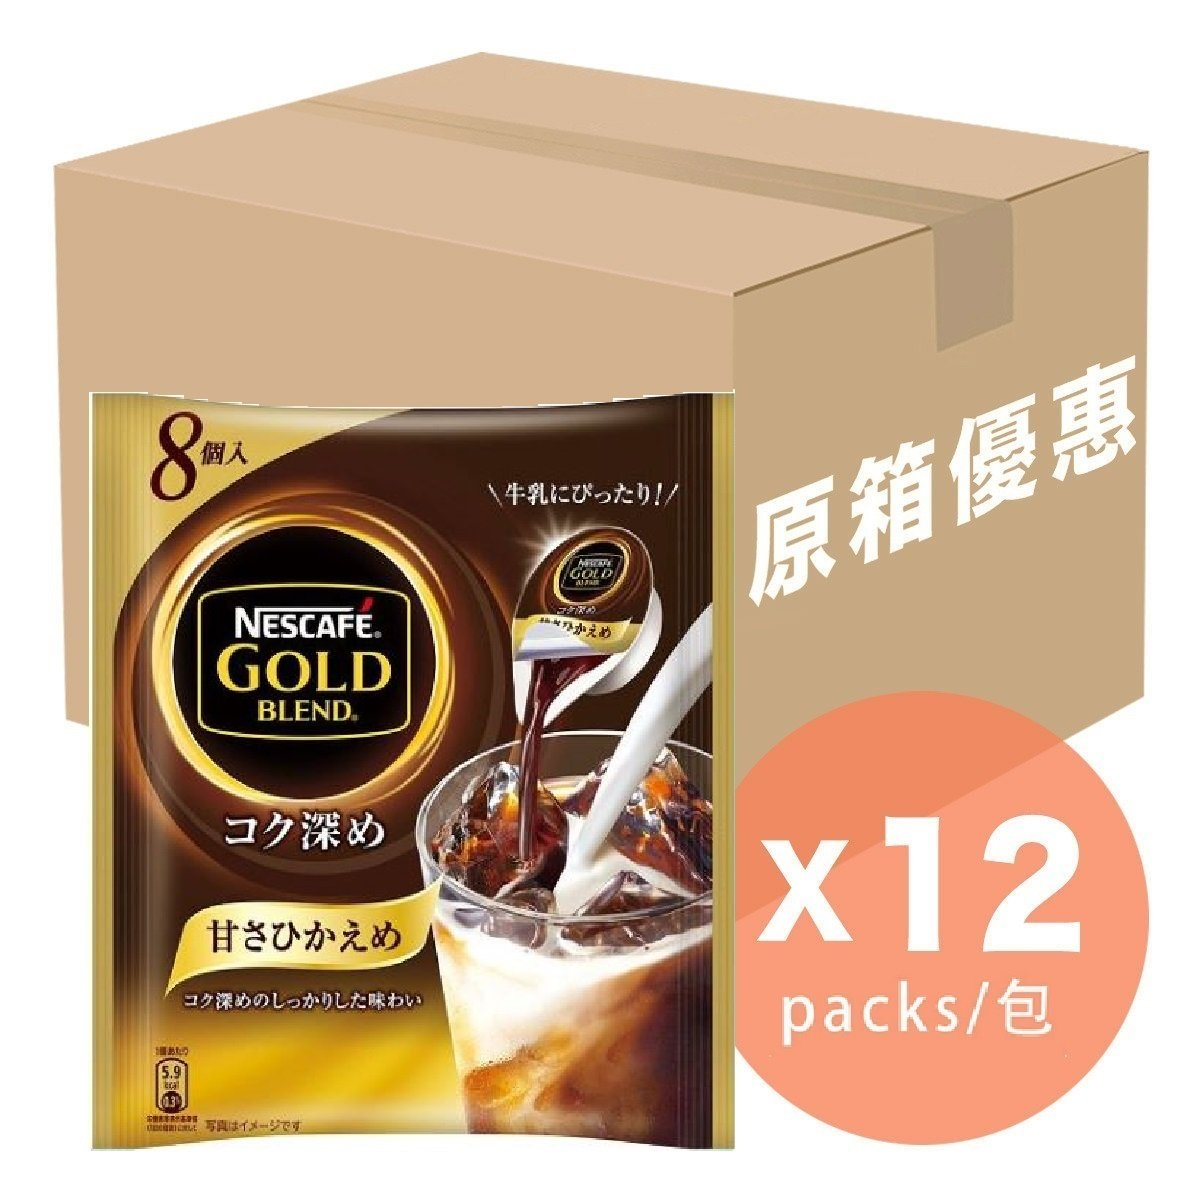 [Full Case] Japanese Import Gold Blend Coffee Liquid Capsule Potion (11g x 8) x 12 packs